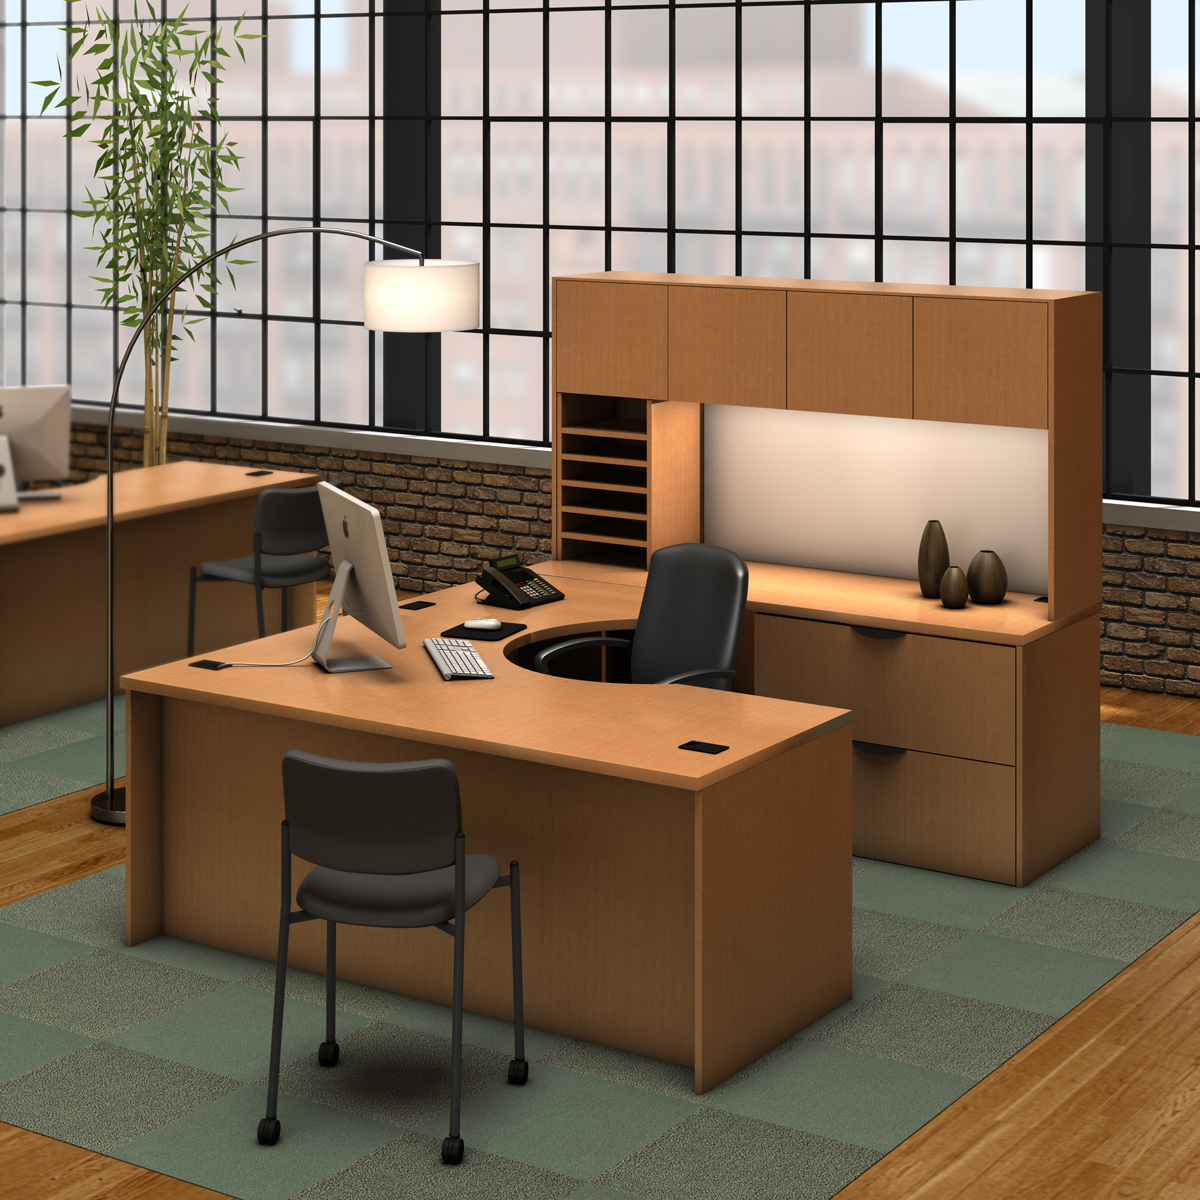 School Office Furniture   School Furnishings  Inc